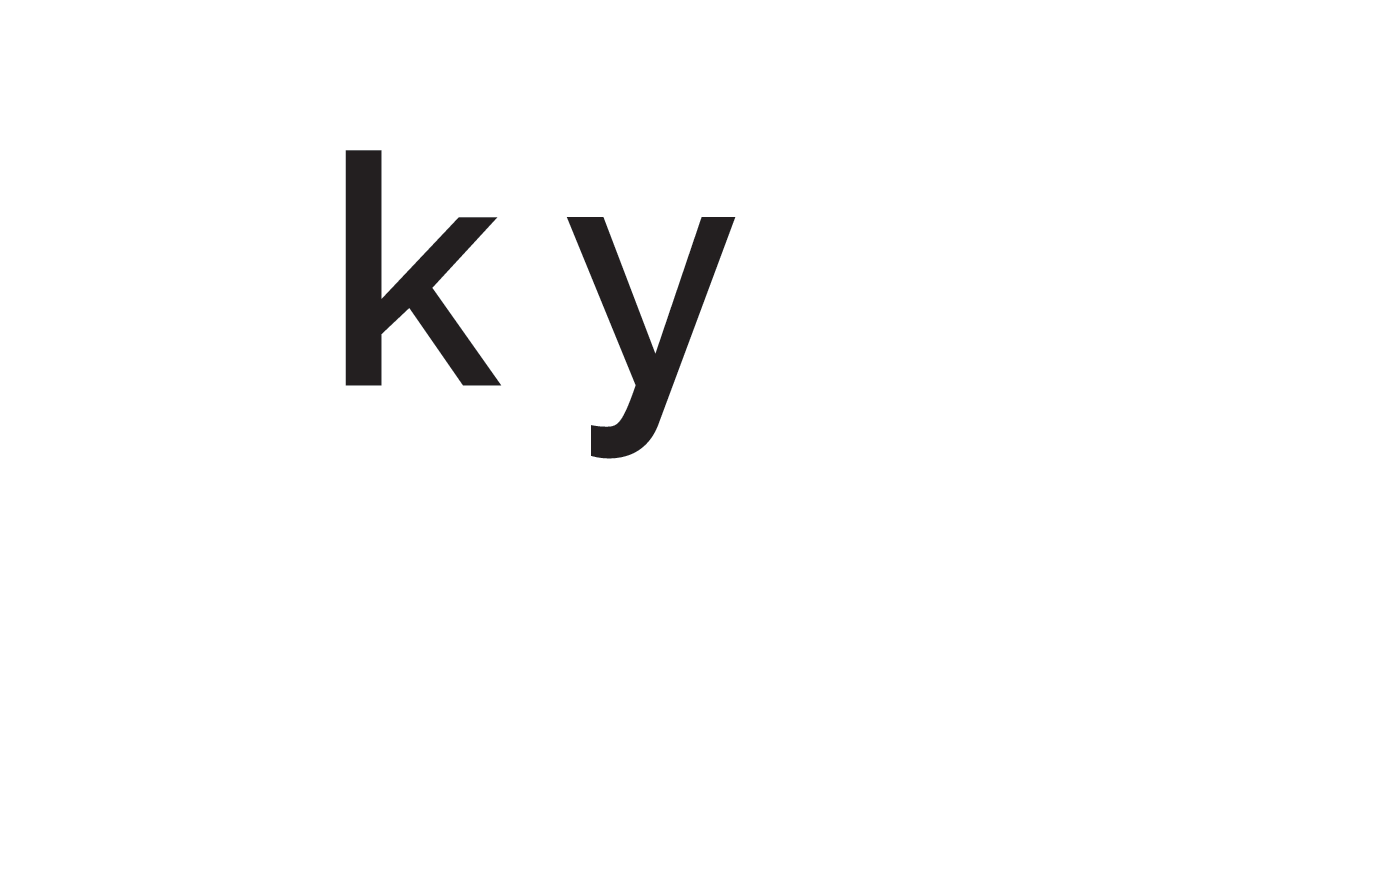 KYLA_WithText_White_Black-KY.png